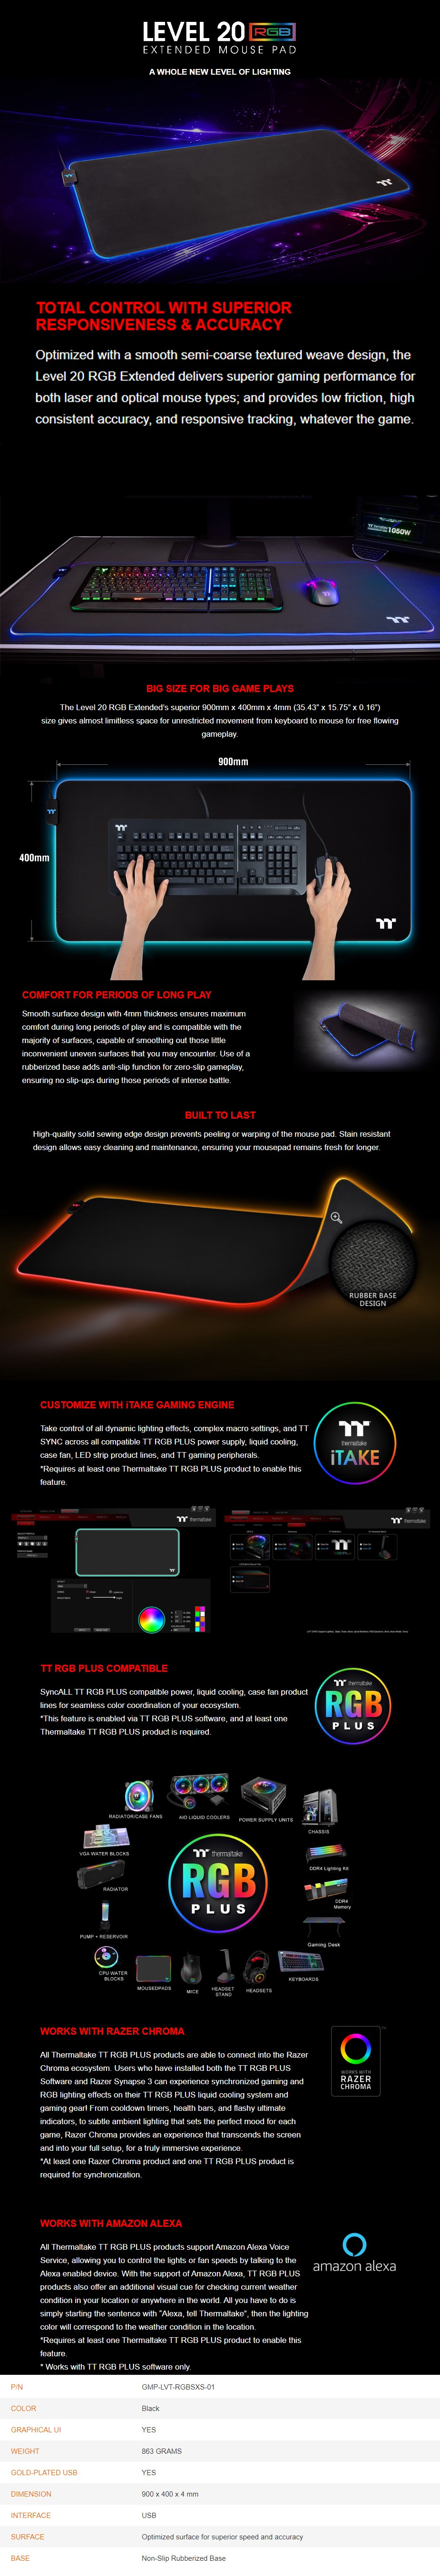 Thermaltake Level 20 RGB Extended Gaming Mouse Pad - Overview 1